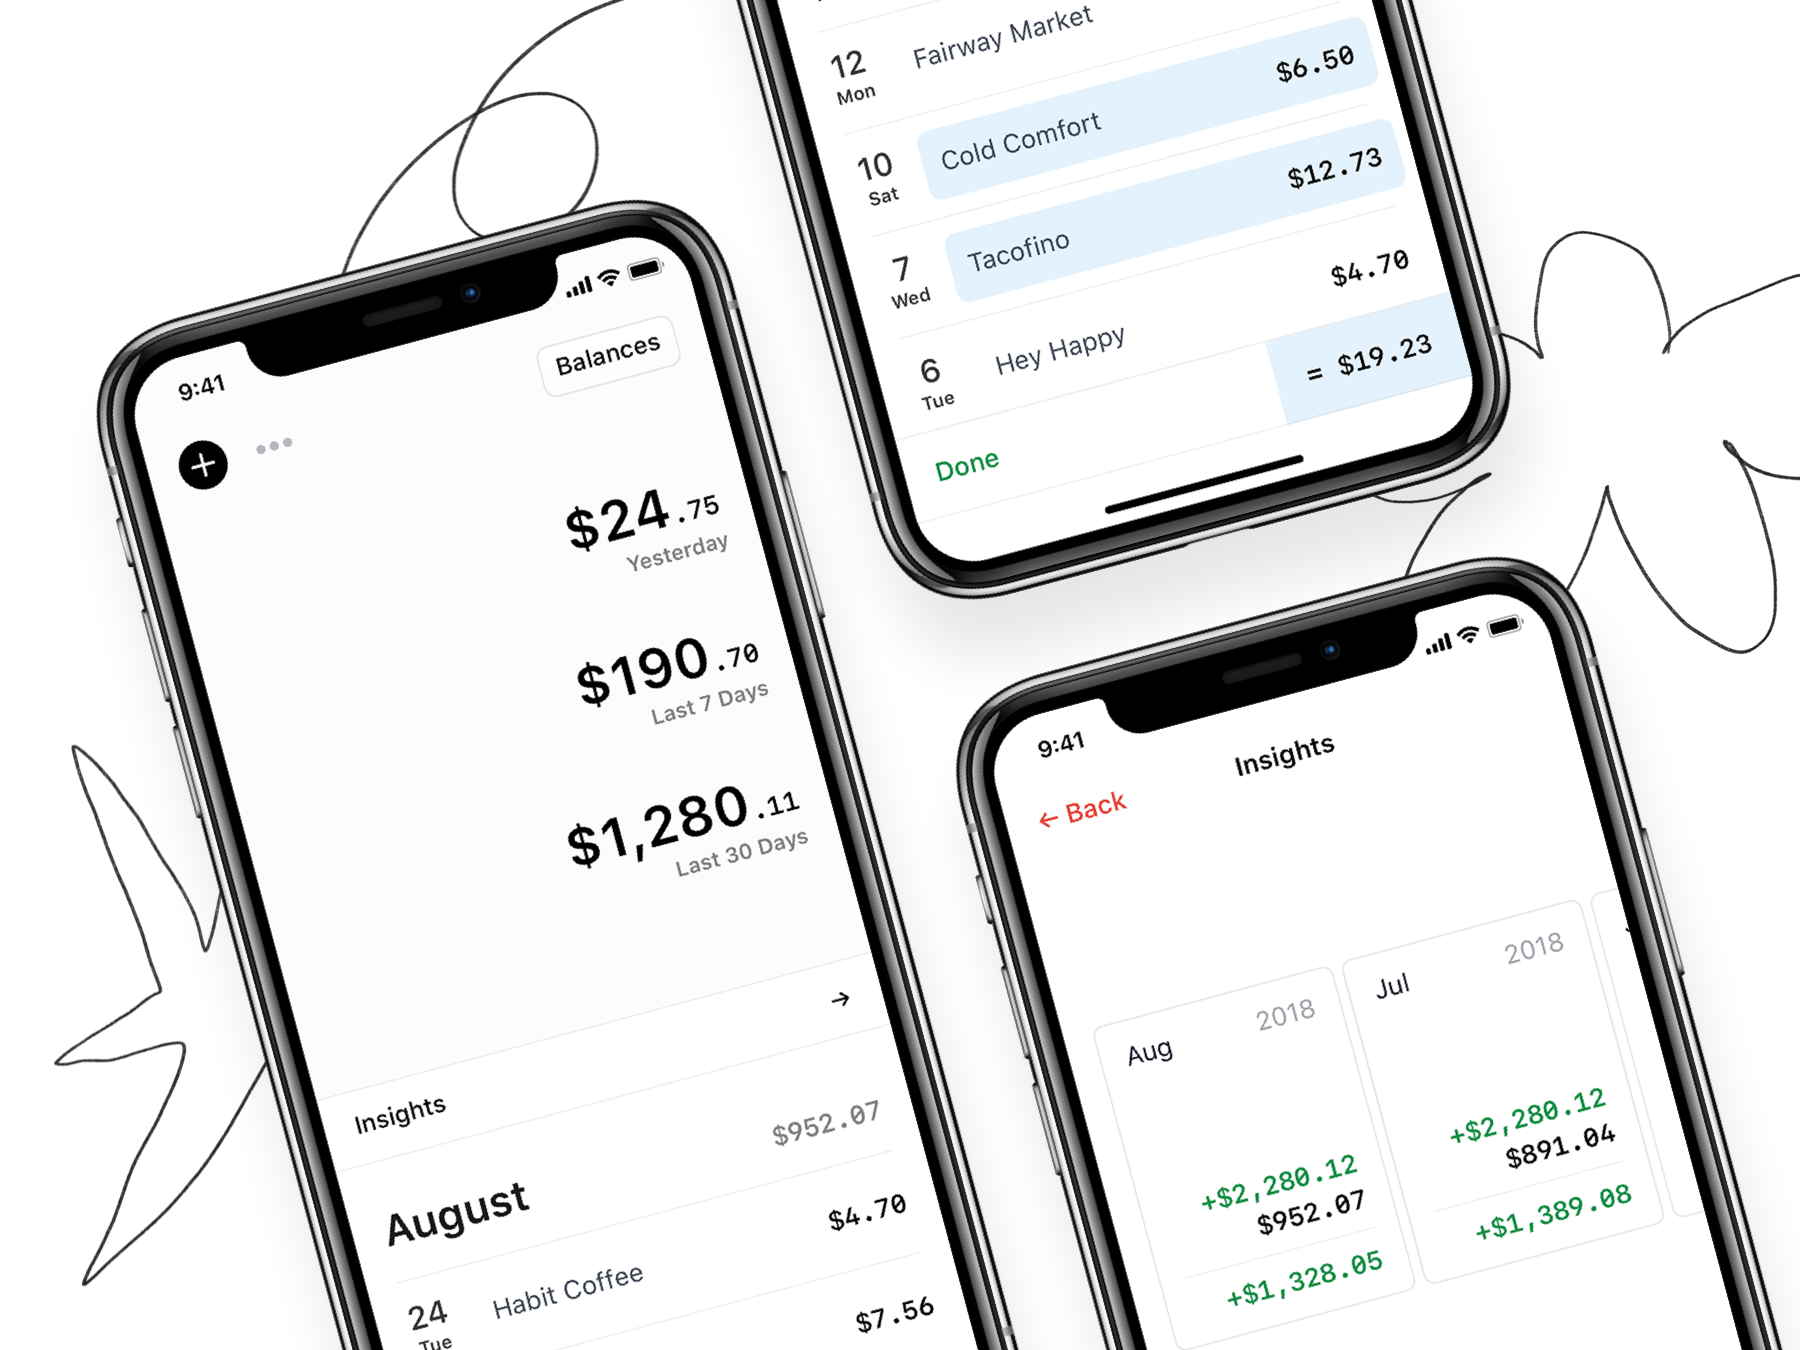 Rollie personal finance spending tracker app